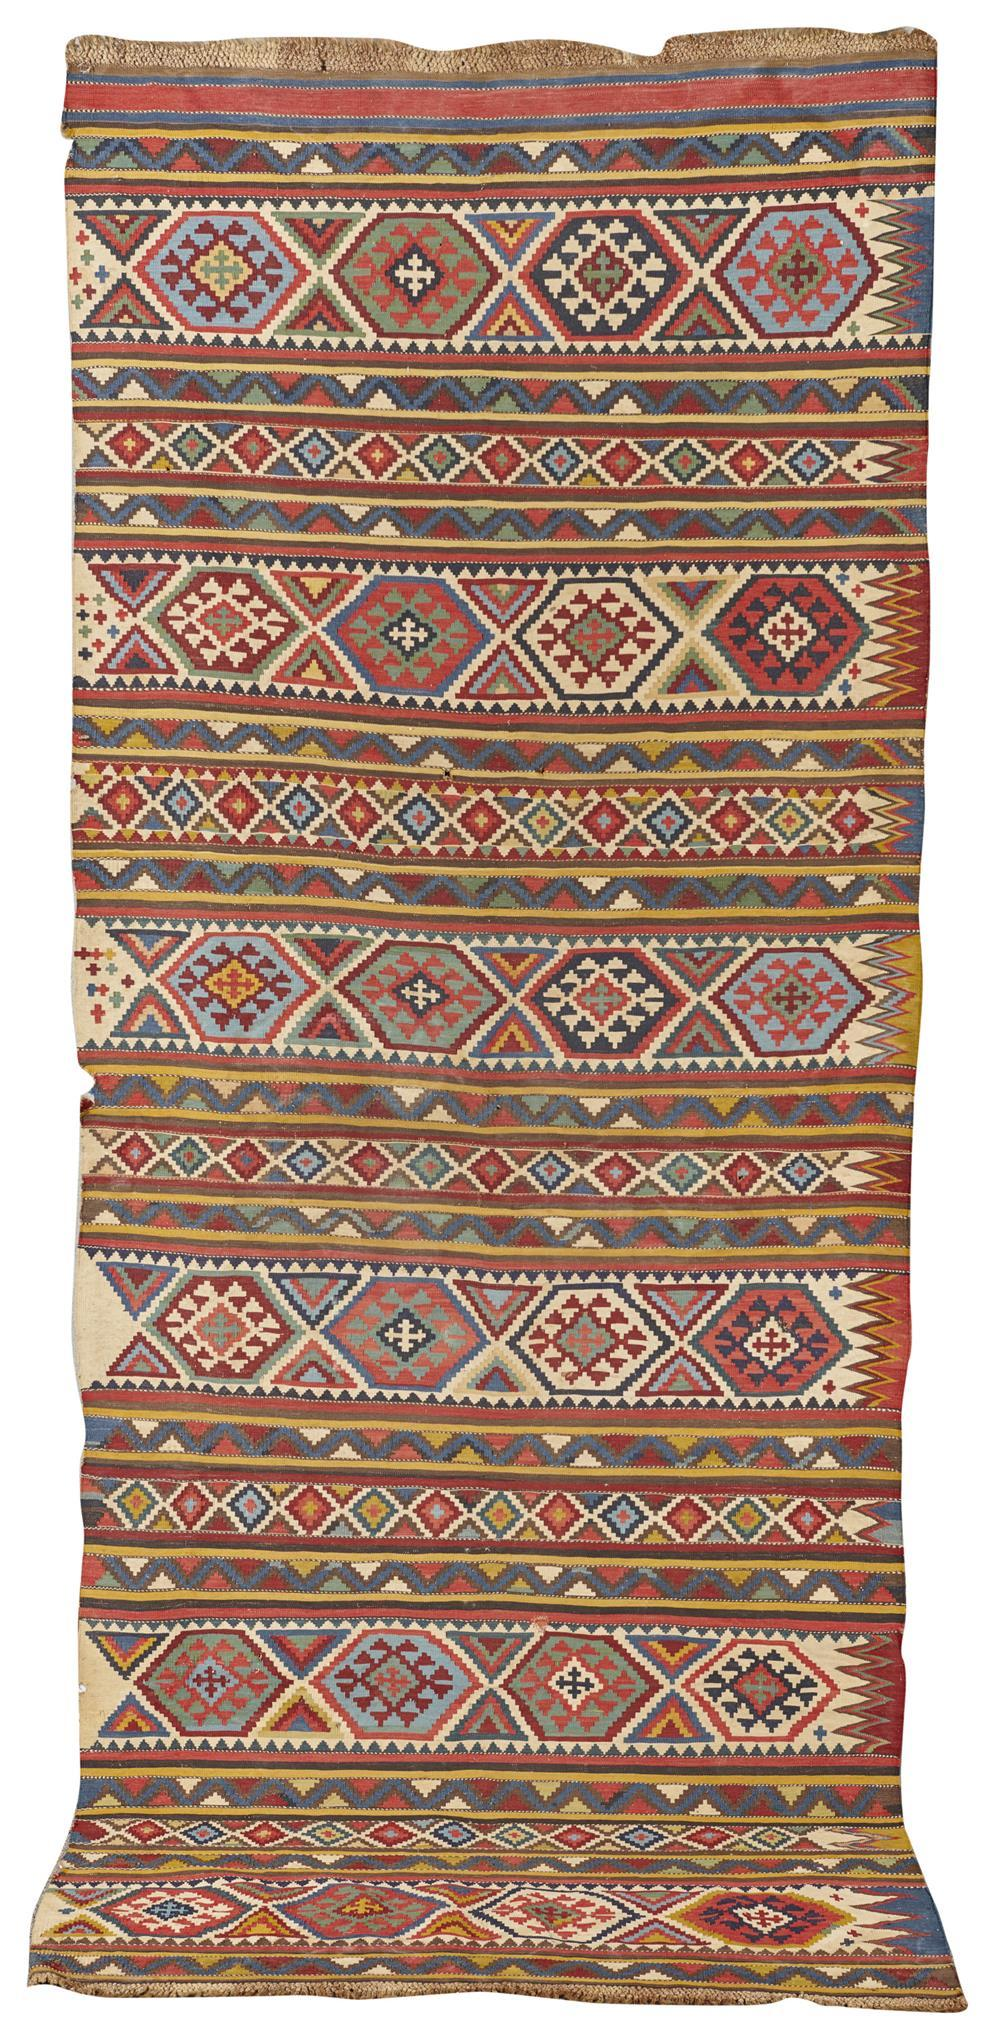 Caucasian Kilim Panel, late 19th century; 9 ft. 5 in. x 3 ft. 10 in.